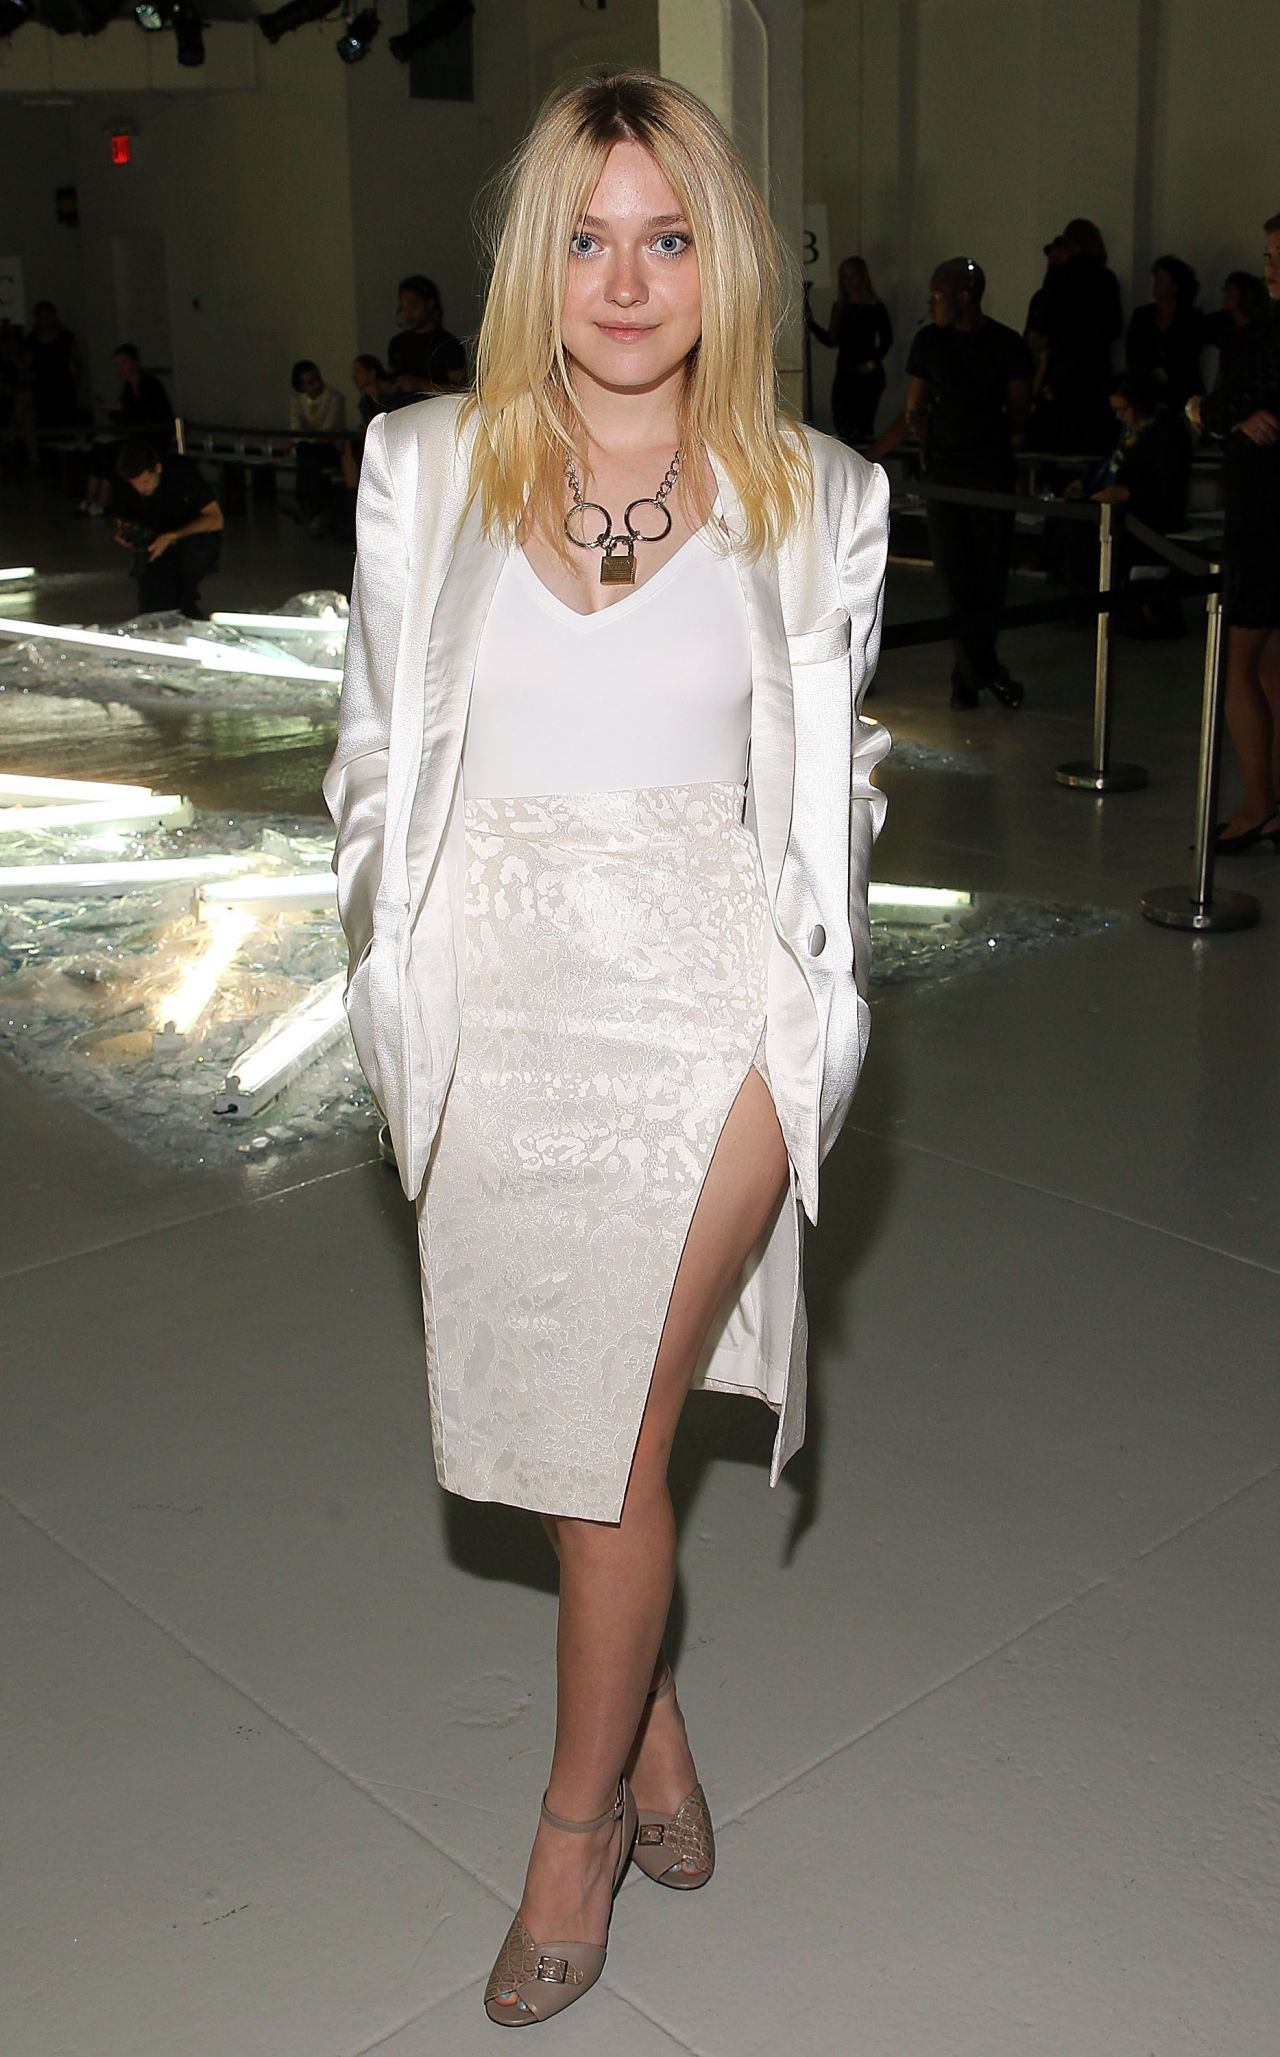 Dakota Fanning - Rodarte Fashion Show in New York City – Sep 2014